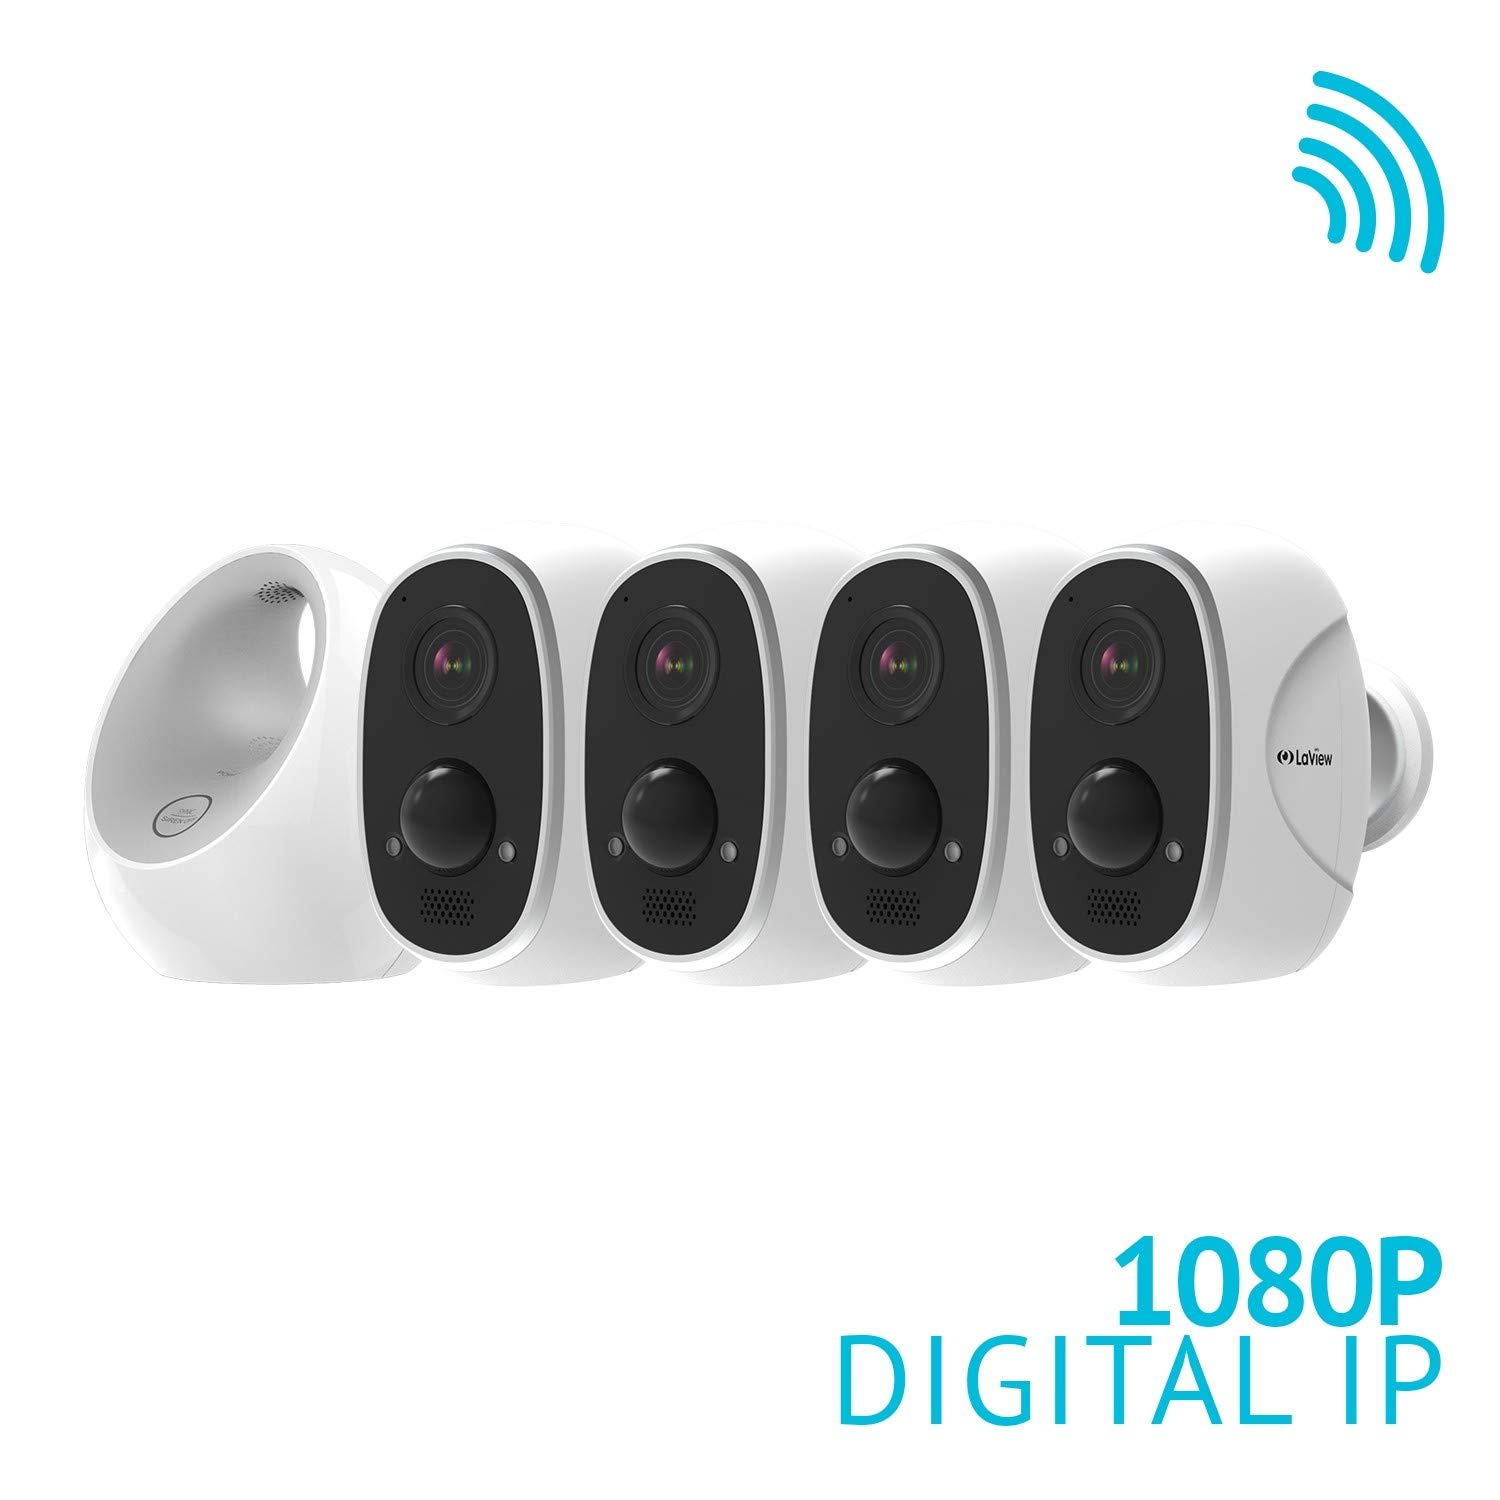 LaView ONE Link 1080P Wireless Security Camera System, Four Battery Powered Security Cameras, Two Way Audio, PIR Thermal Detection, Compatible with Alexa, Weatherproof Home Security